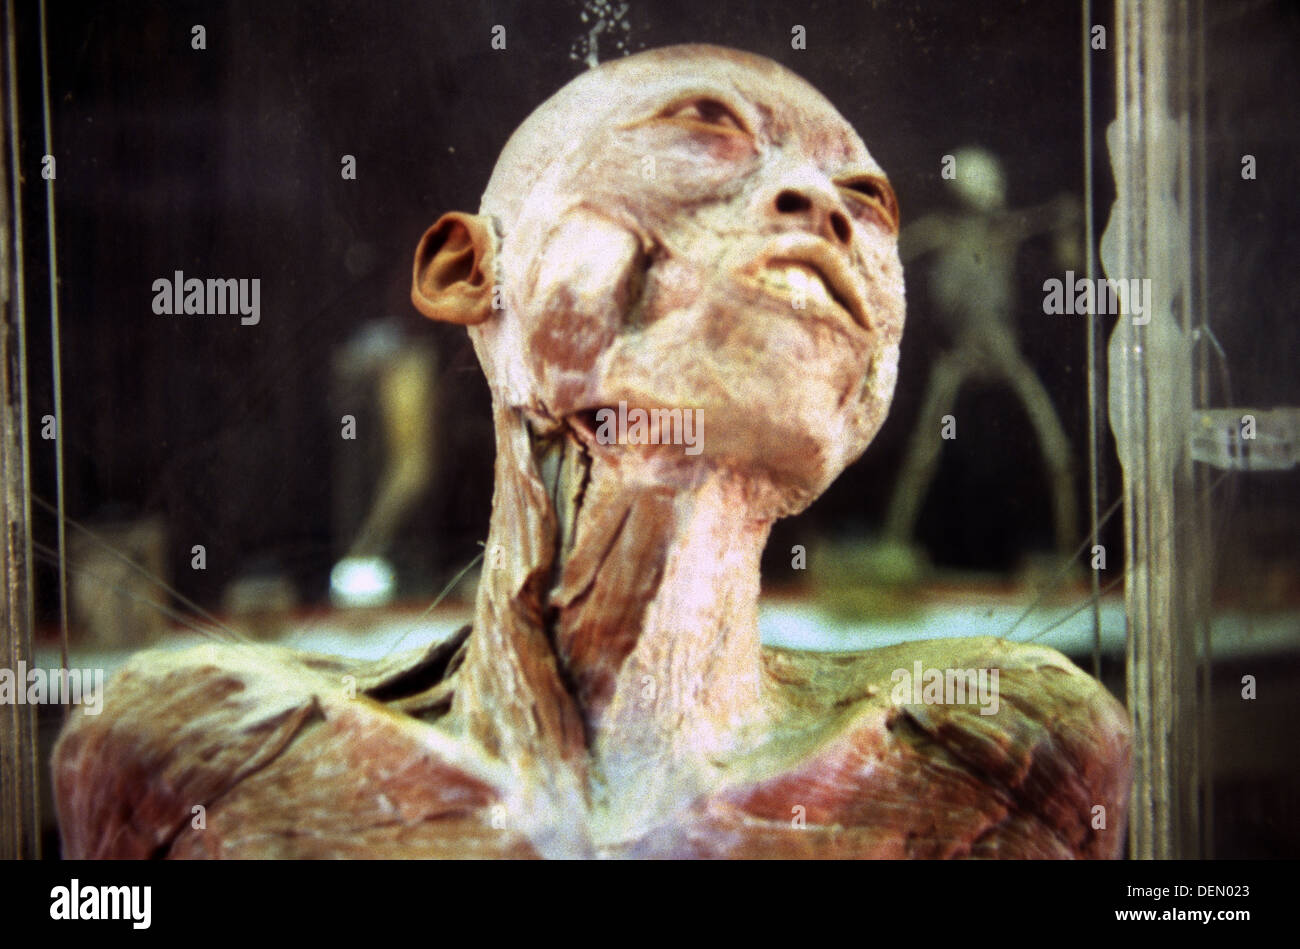 Corpse in formaldehyde jar displayed in the Beijing Museum of Natural History located at Dongcheng District, Beijing China - Stock Image